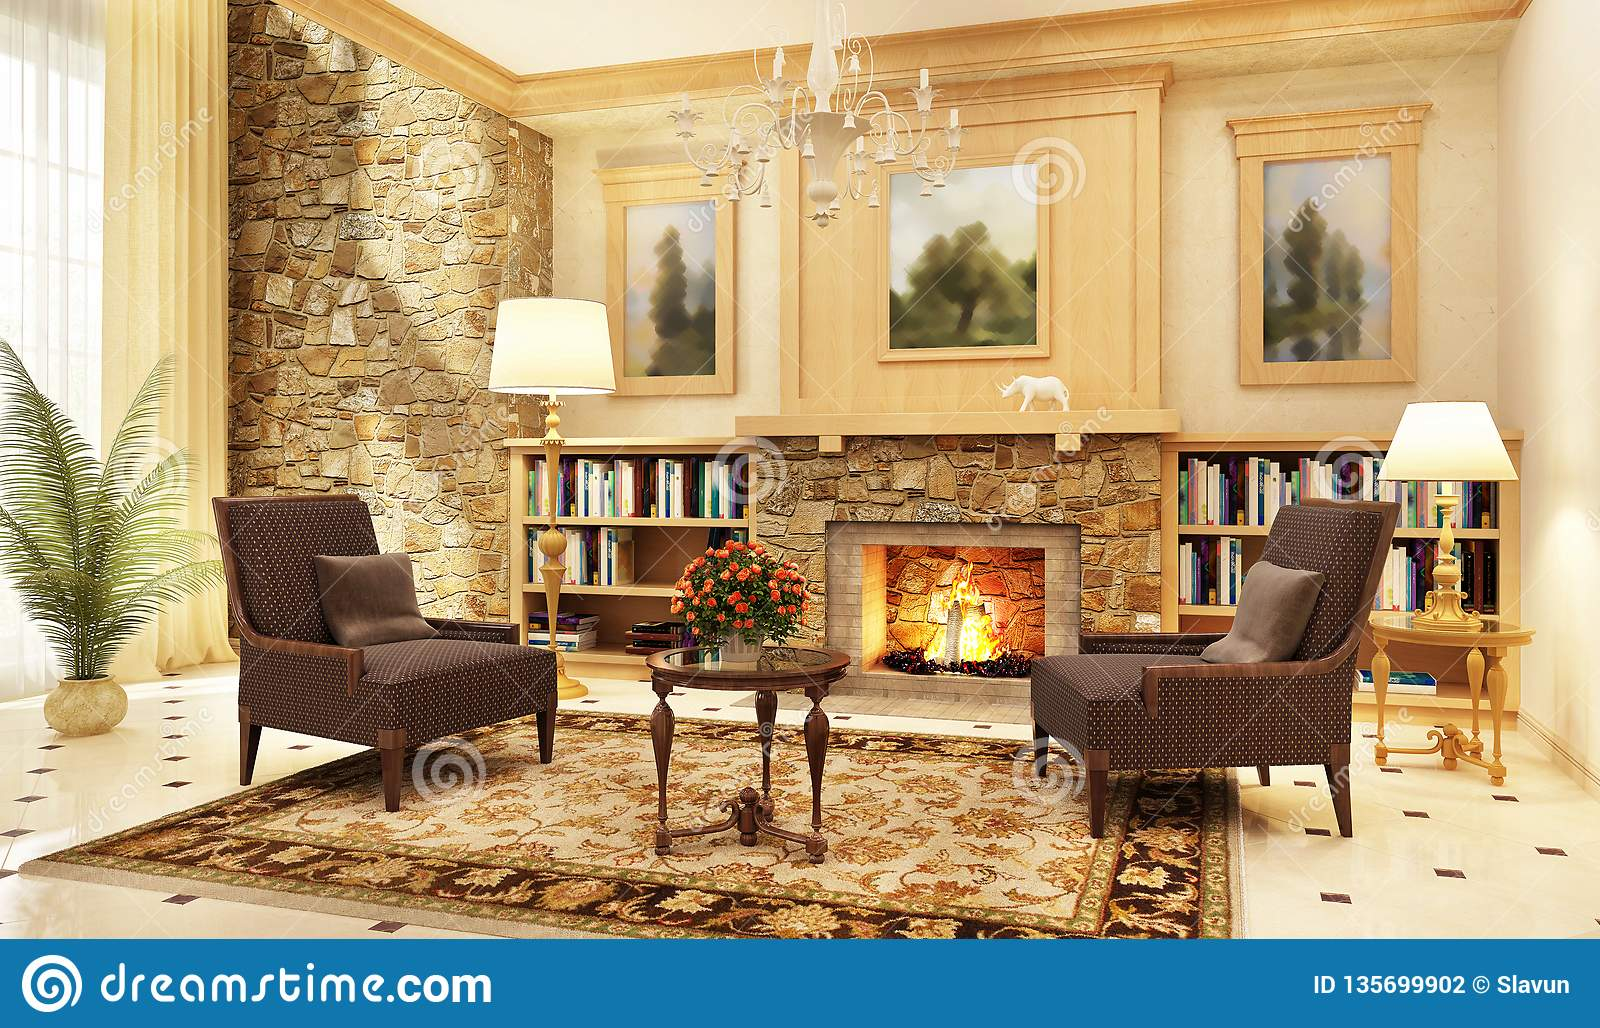 Large Living Room Interior Design With Fireplace And Armchairs Stock Photo Image Of Indoors Carpet 135699902